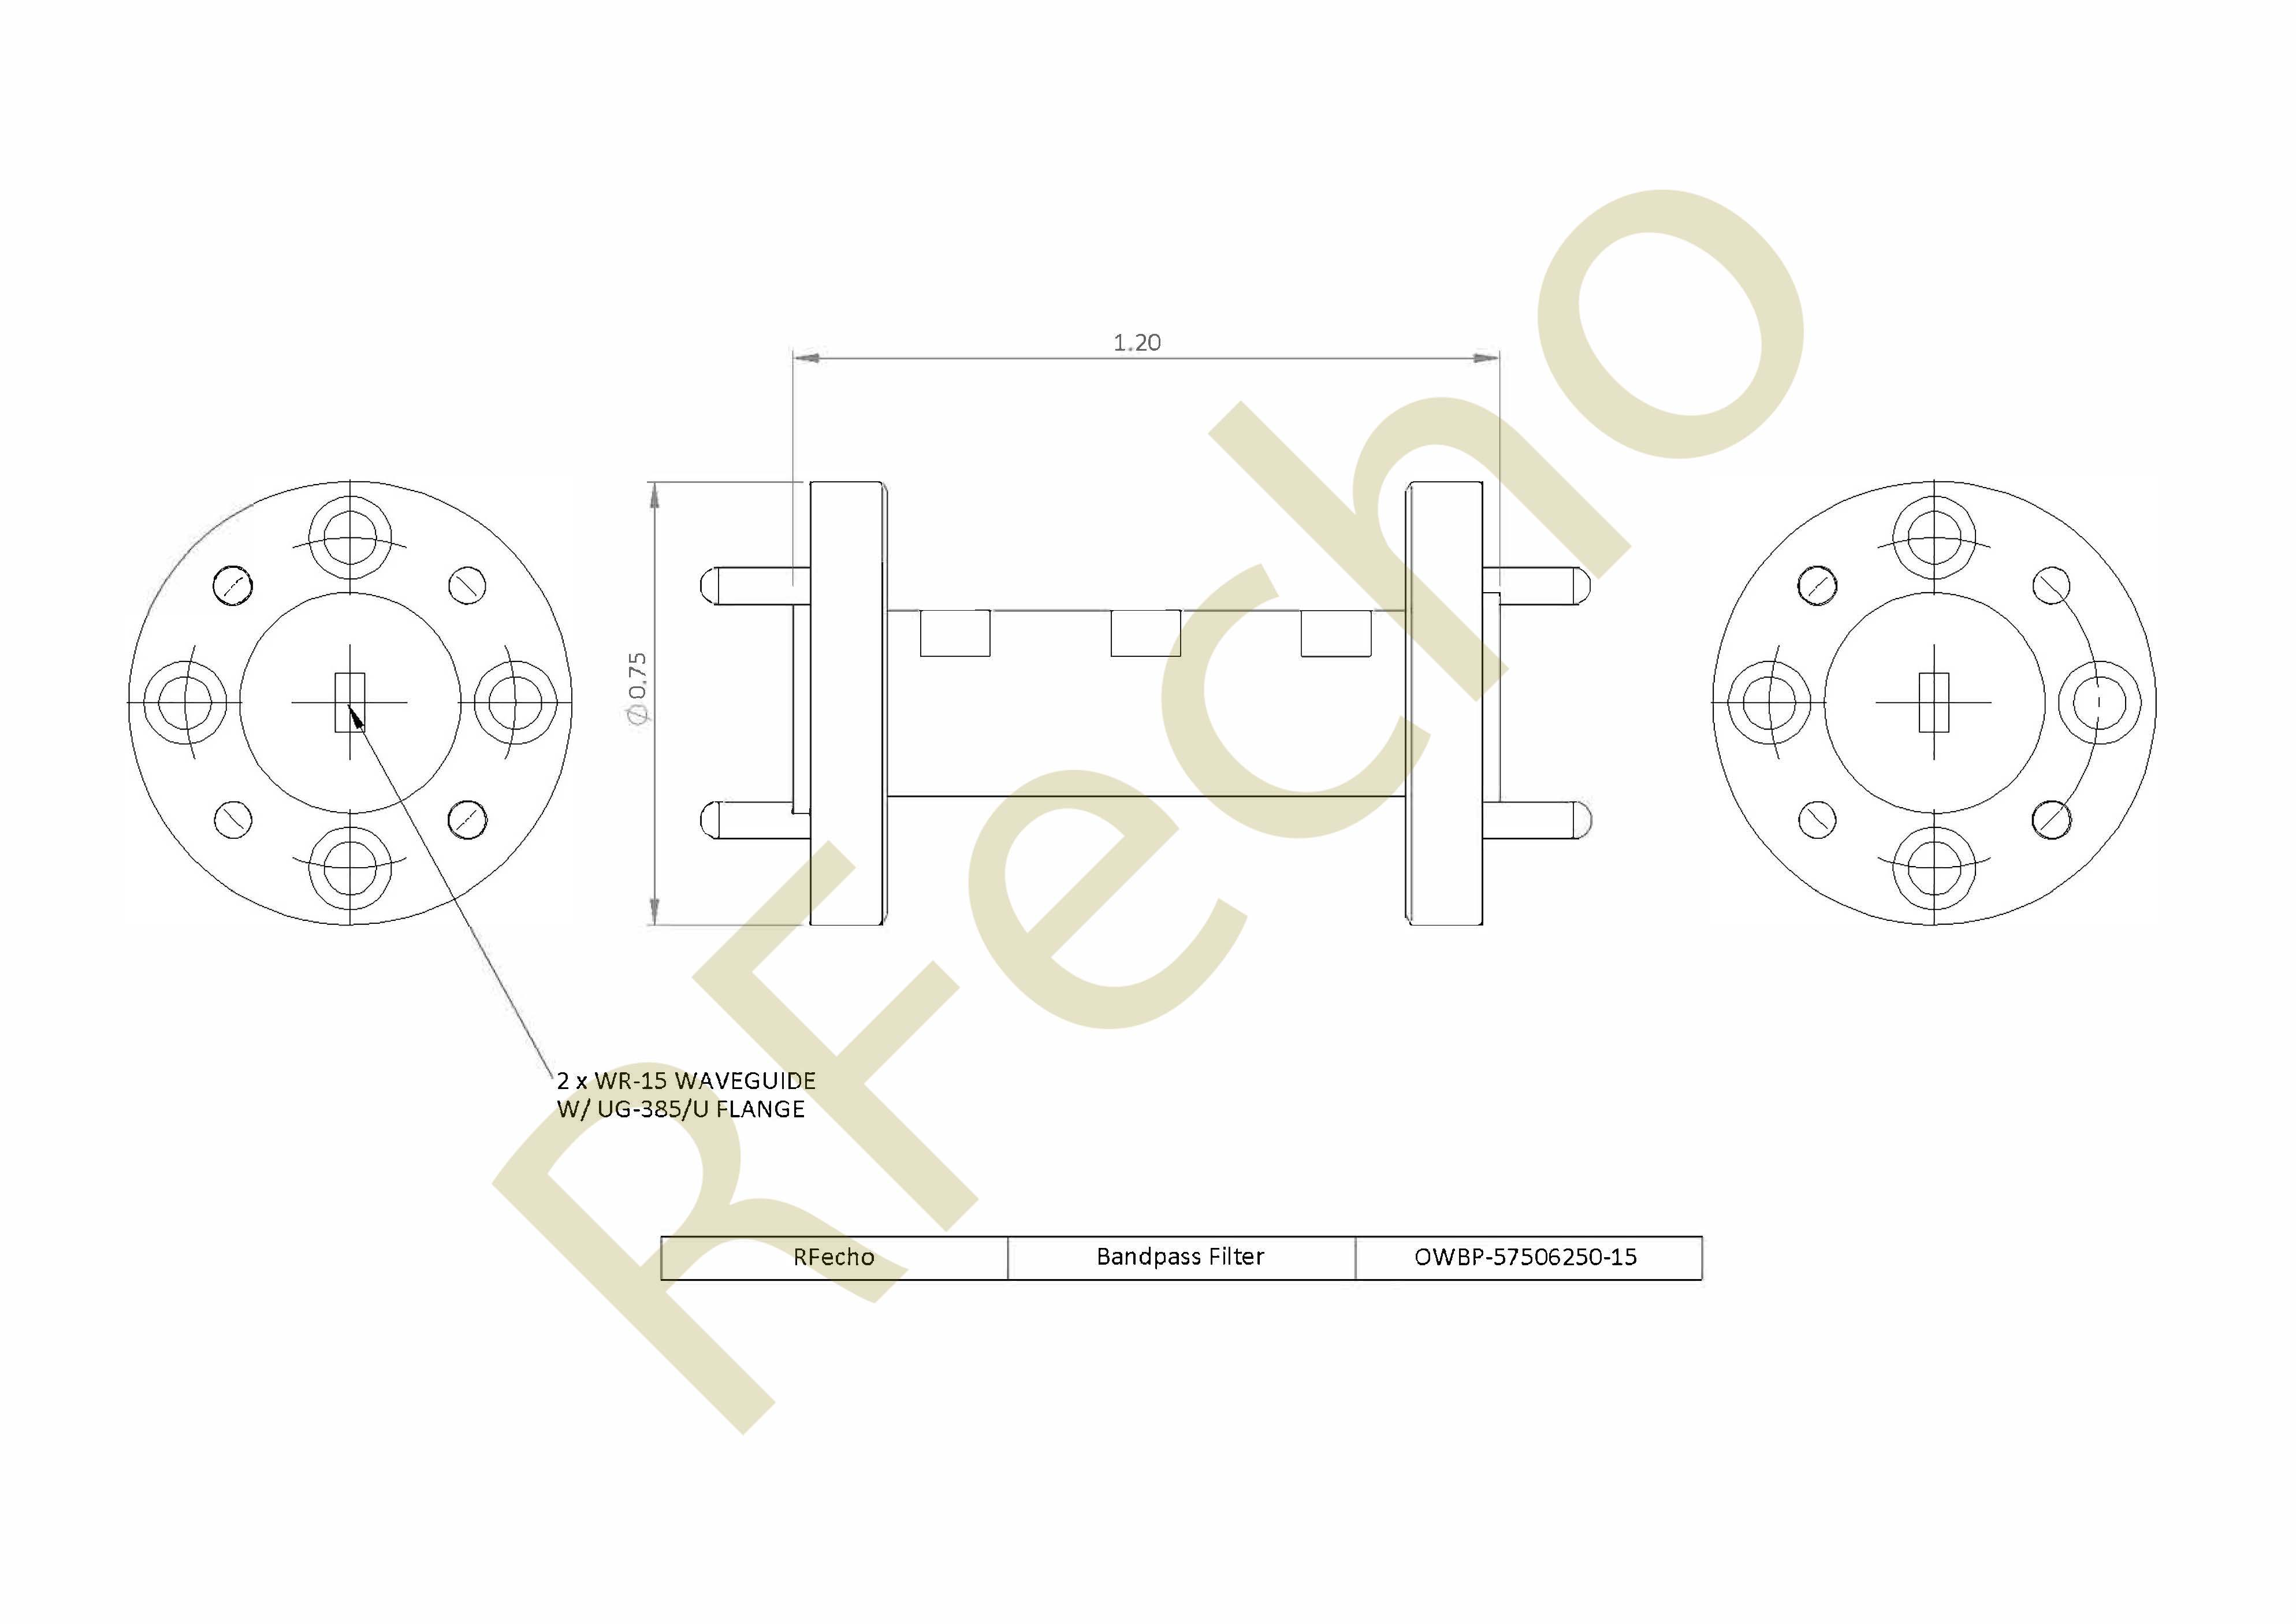 Bandpass Passive Microwave Filter 57.5GHz to 62.5GHz V Band Waveguide Bandpass Filter Rejection Frequency 67GHz to 80GHz